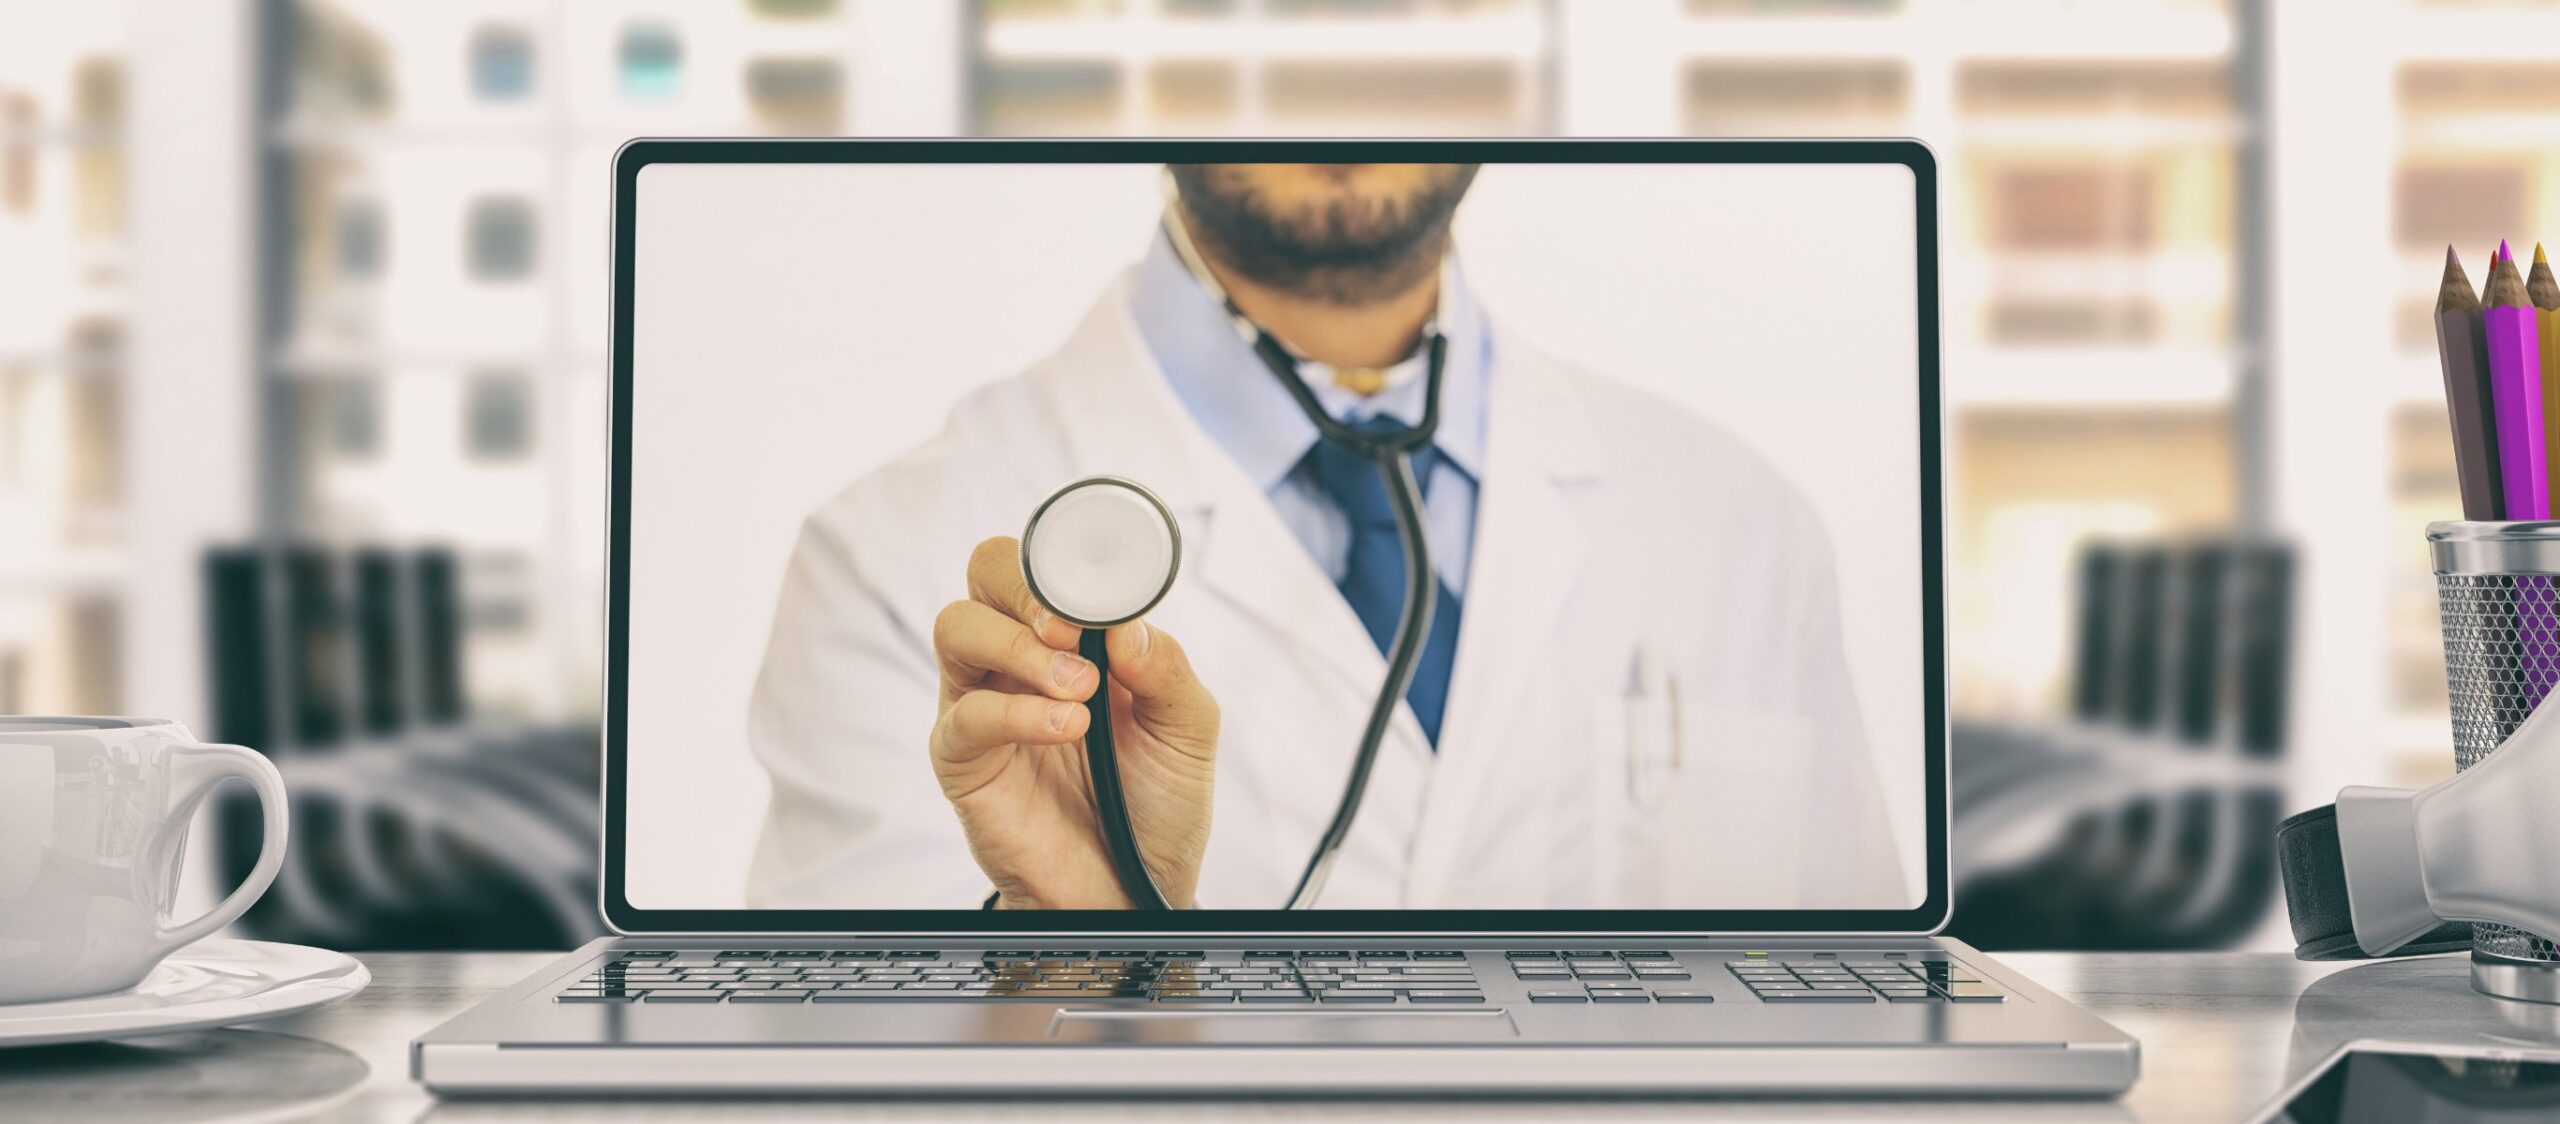 Calm Global promotes telemedicine to reduce hospital waiting time